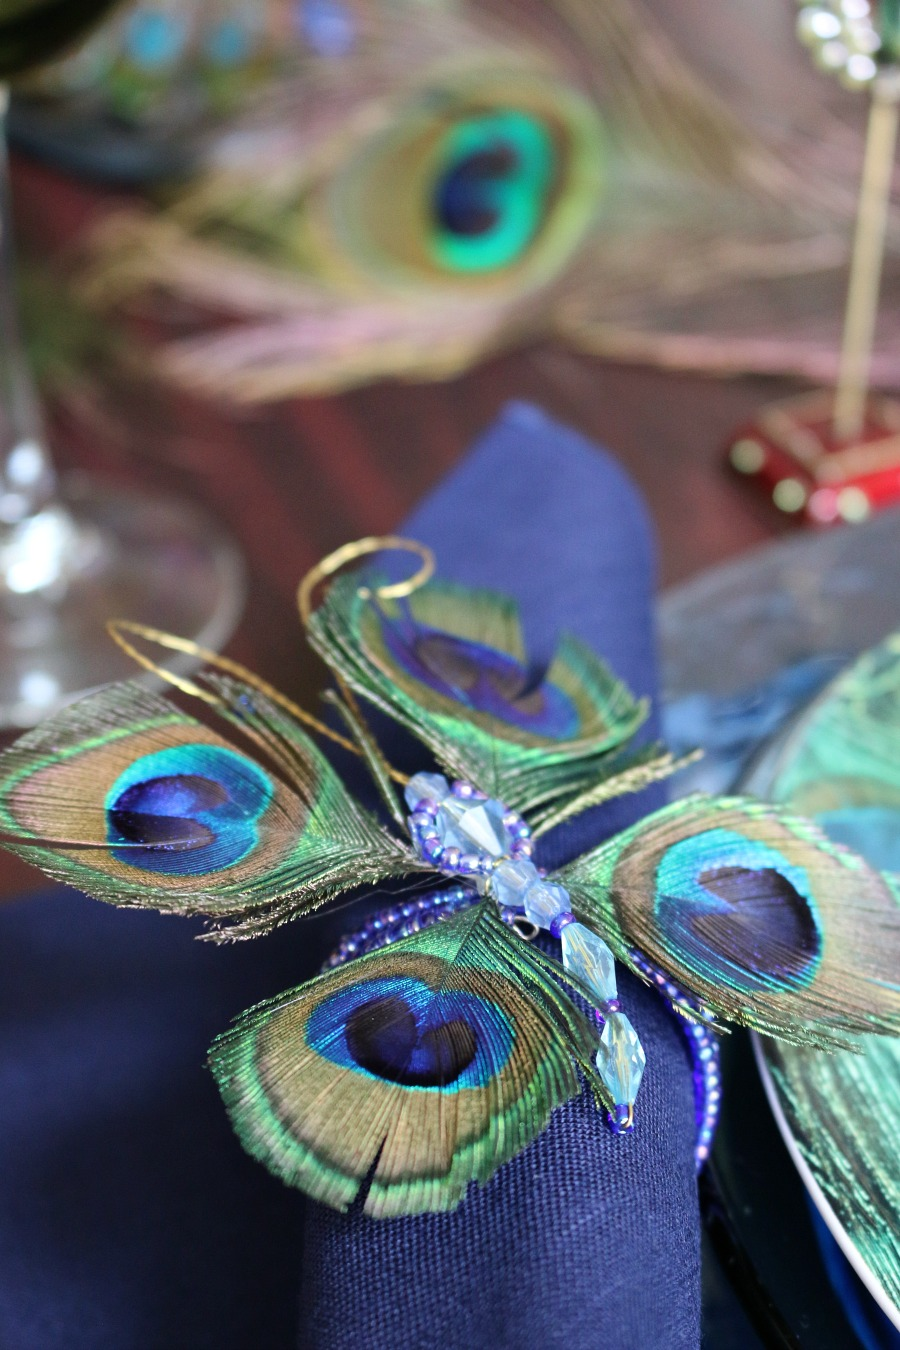 Peacock Napkin Ring - sometimes by purchasing one thing you love, you can build an entire Table Scape. Like this Peacock inspired Table Setting.